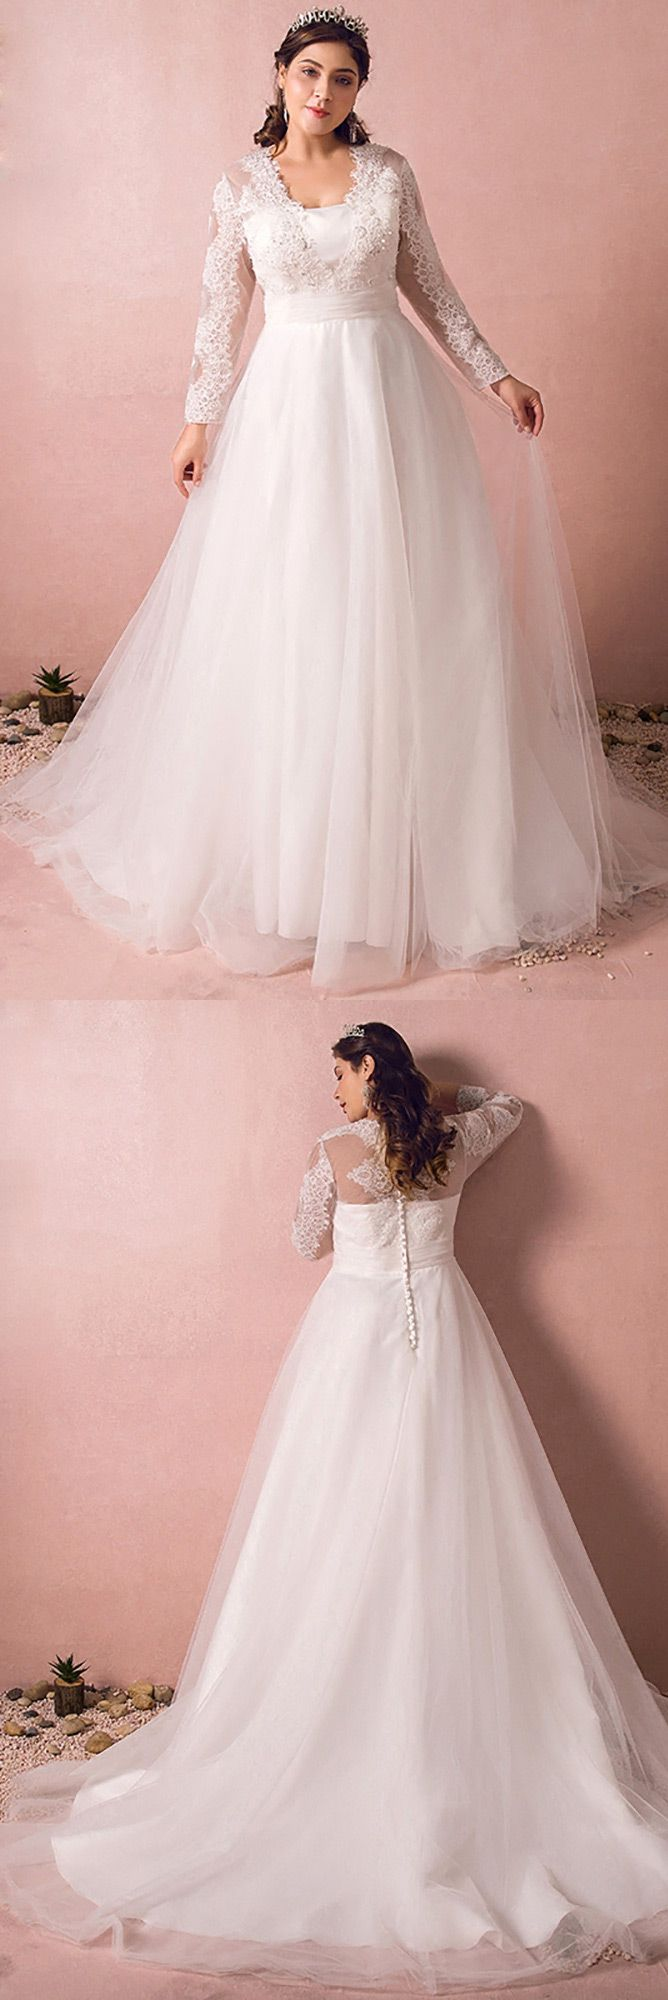 11 best Sincerity Bridal, Plymouth, Exeter, Devon & Cornwall images ...